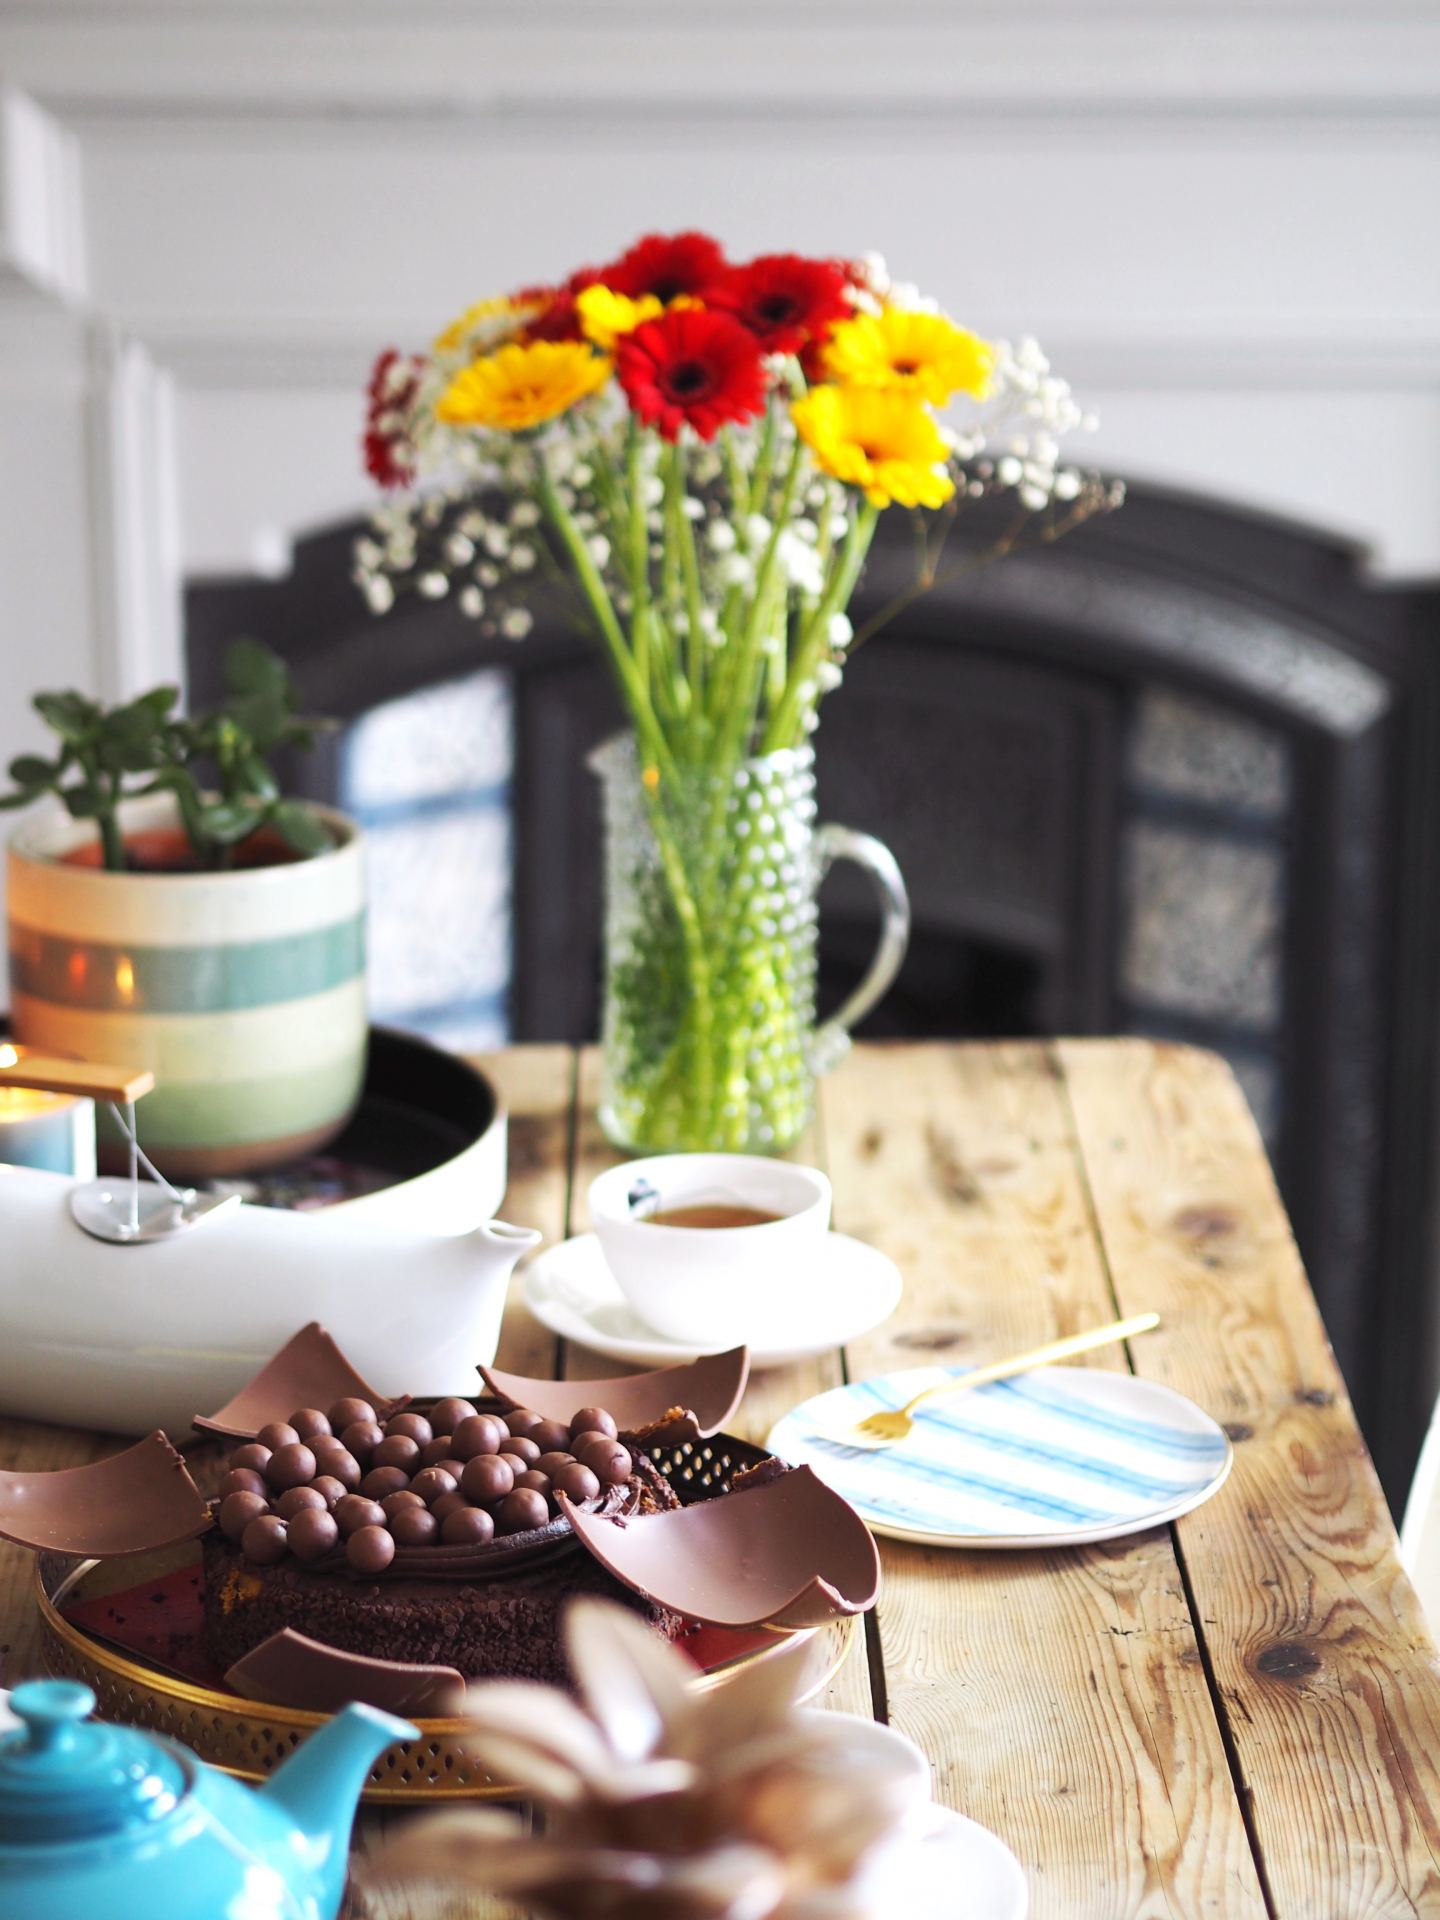 malteaser smash cake why it's important to have more fun flowers fashon for lunch blog labelsforlunch